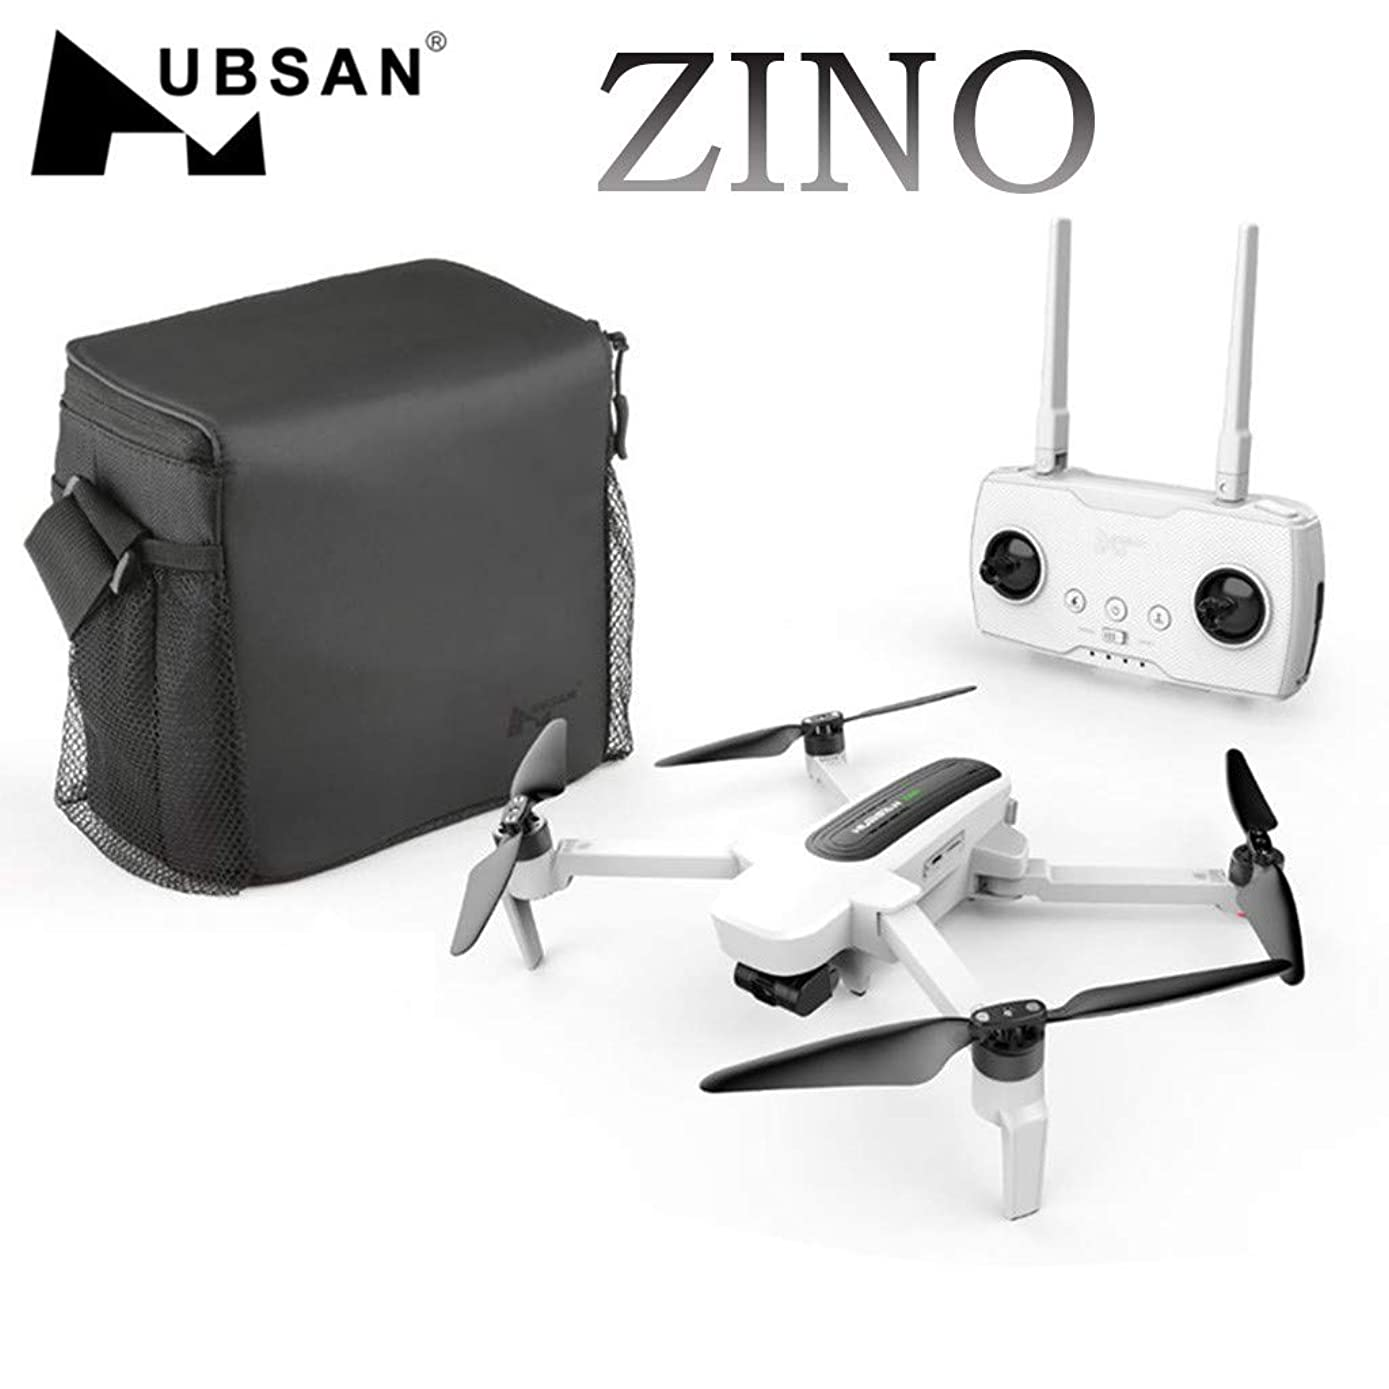 HUBSAN New Zino Drone,with 4K Camera H117S GPS WiFi 5G Brushless Motor, Foldable Arm 3-Axis Gimbal RC Quadcopter,with Gesture Video,Experiential Follow,APP Control (White)